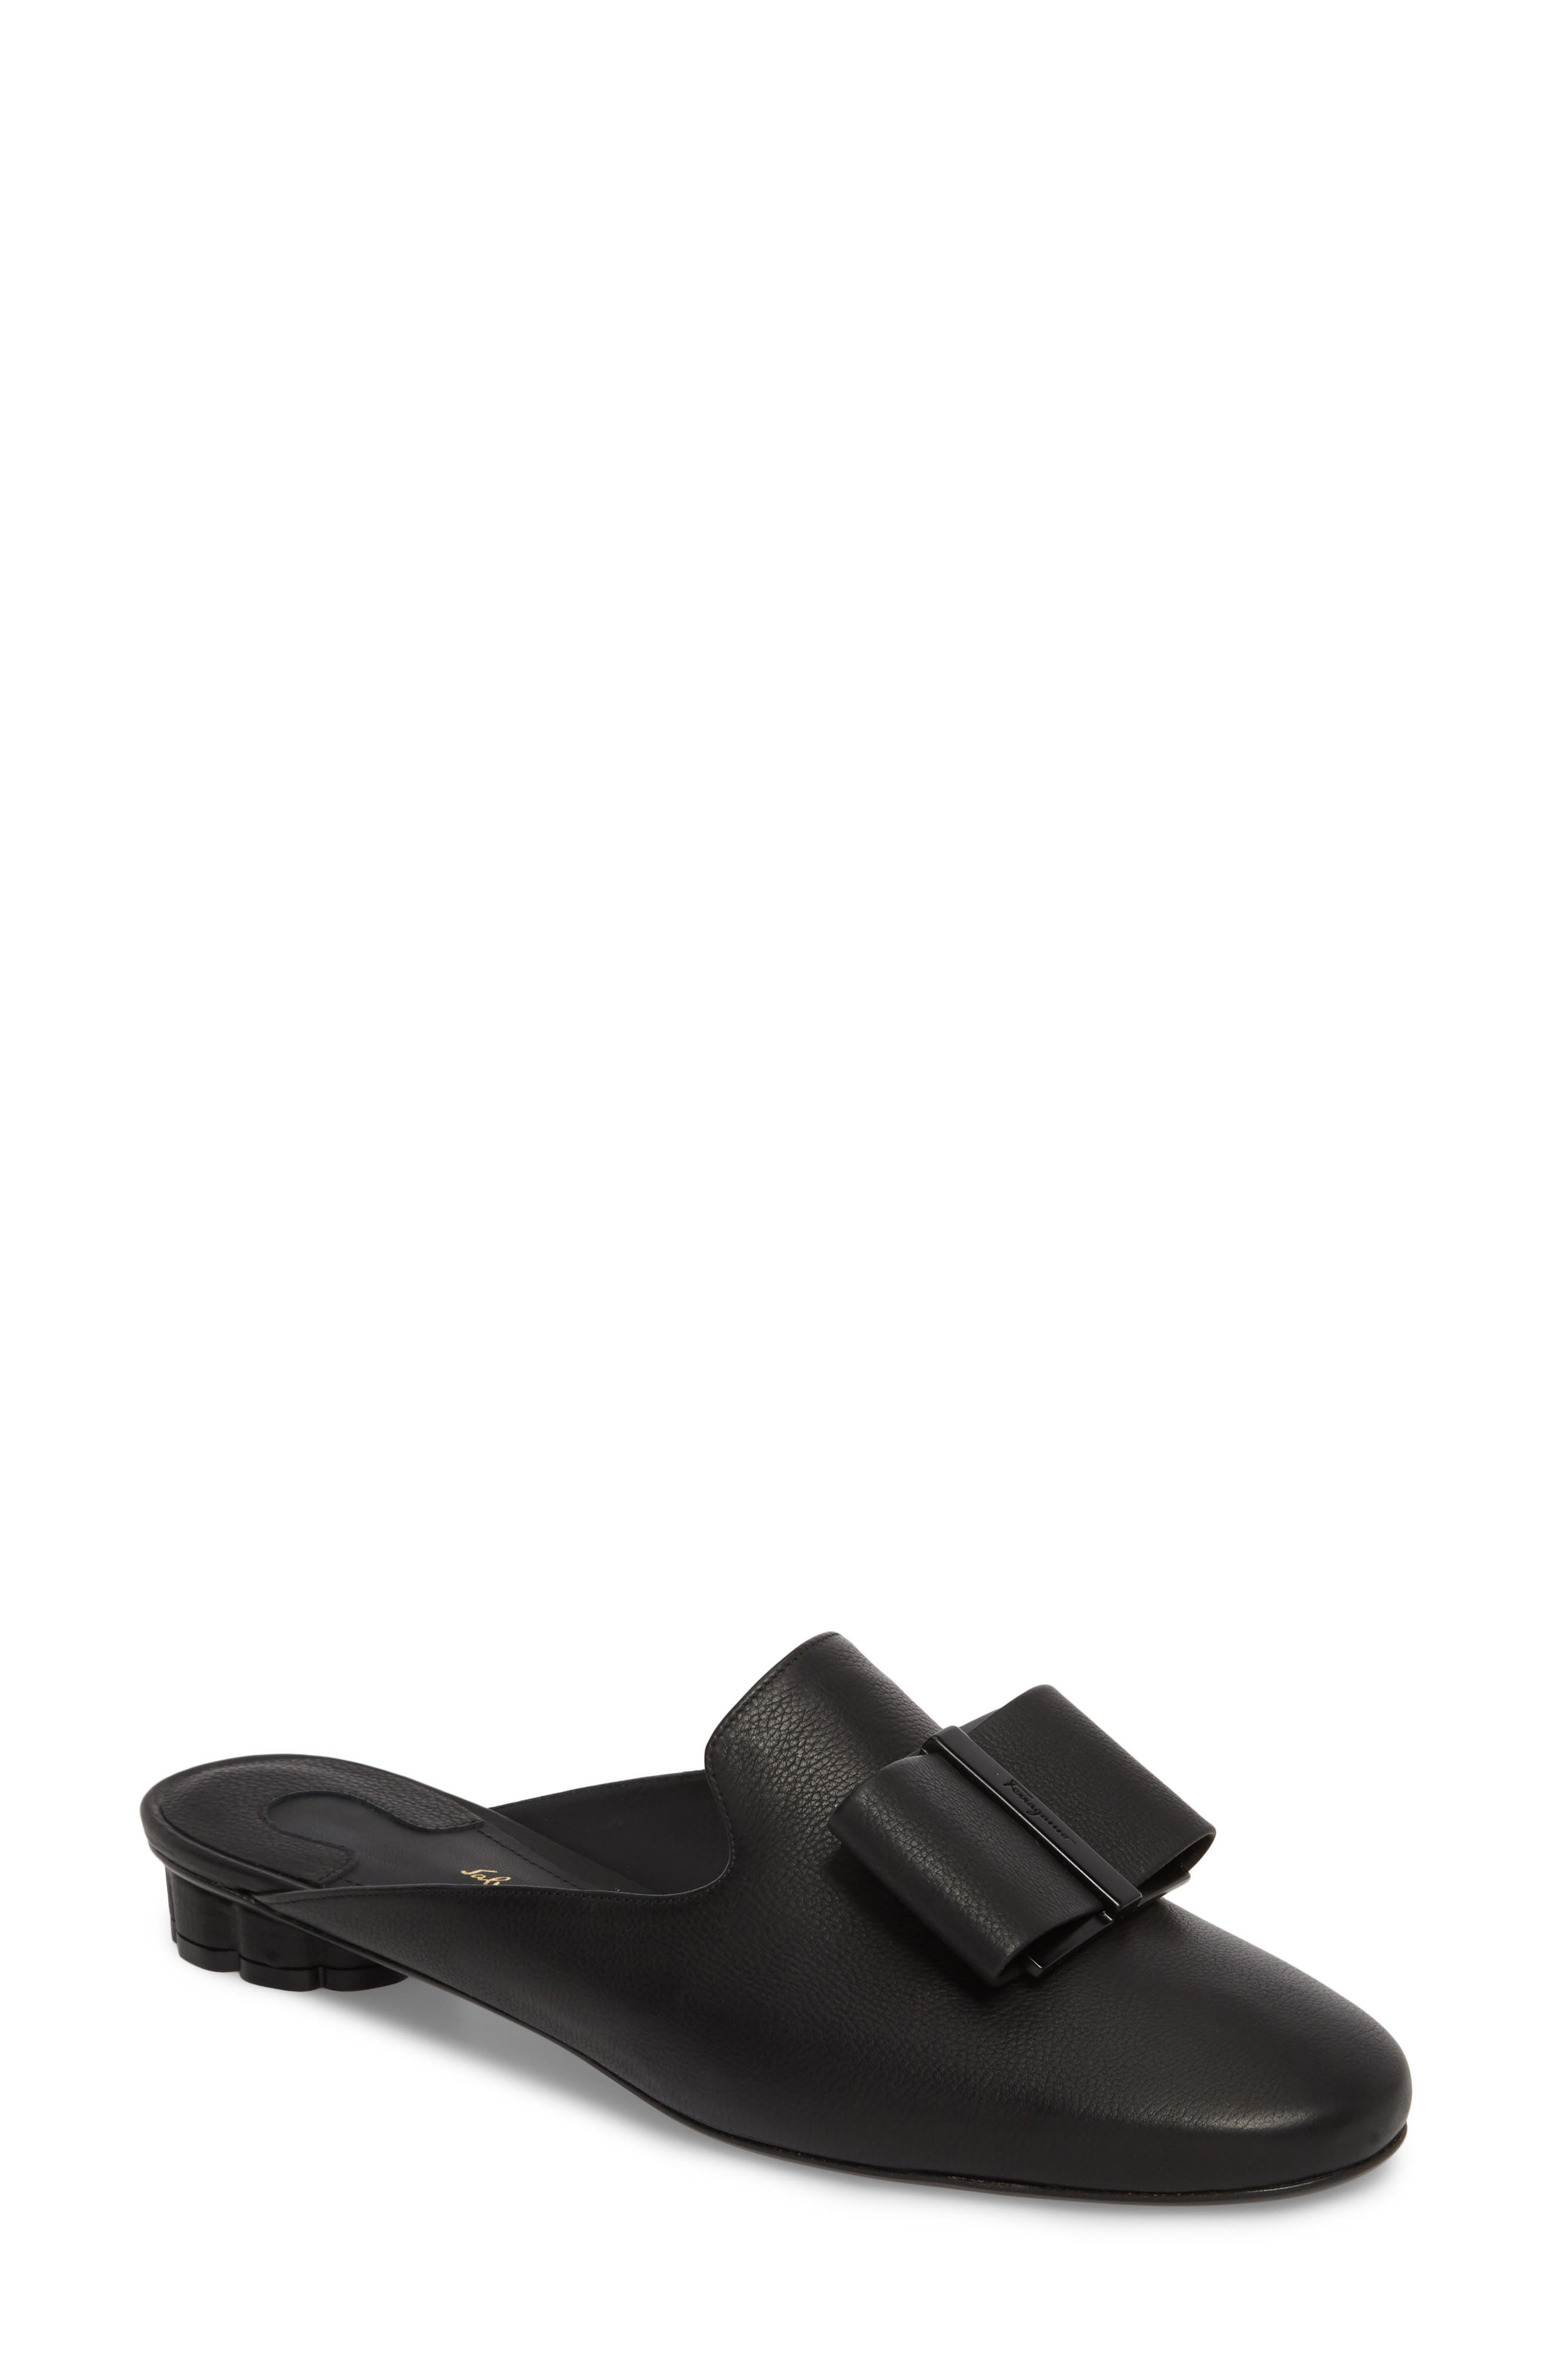 Sciacca Bow Loafer Mule,                         Main,                         color, BLACK